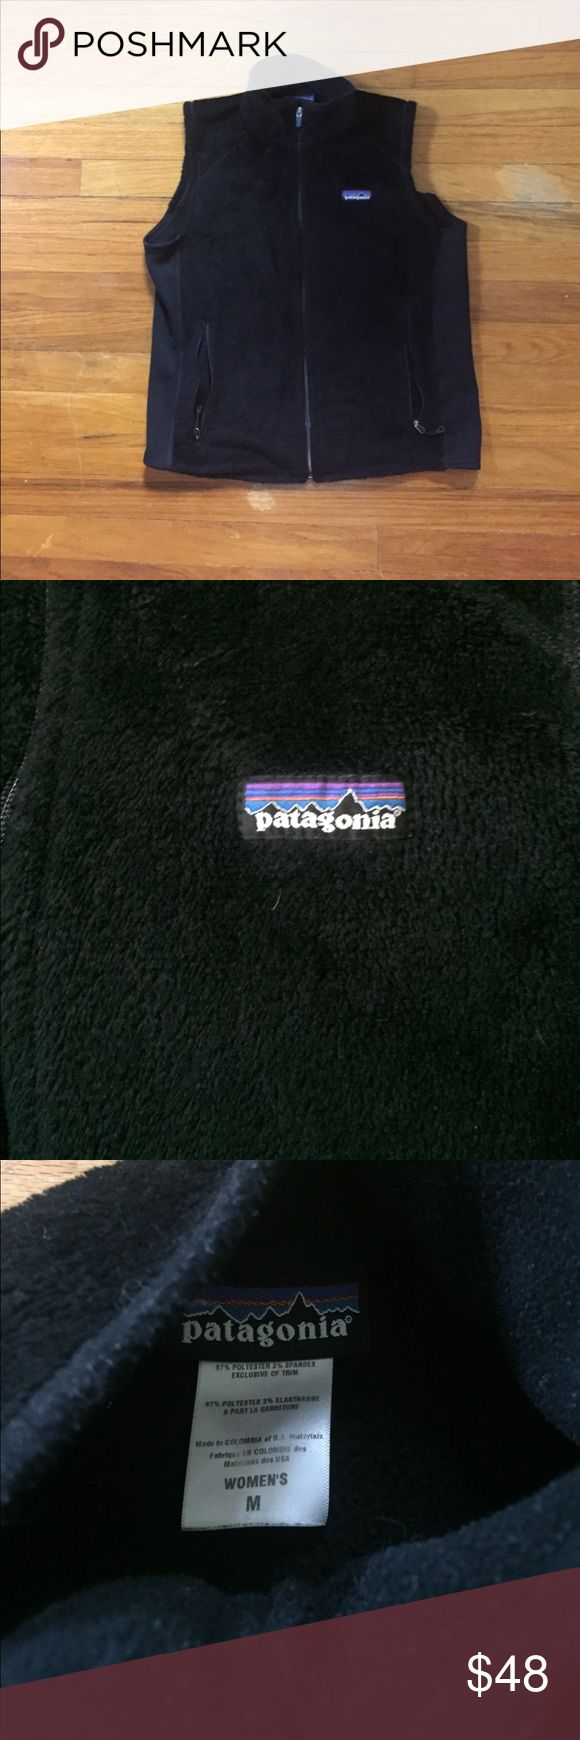 ✨~SALE~✨Patagonia Fleece Vest | Size M Adorable little Vest from Patagonia. Good condition! Patagonia Jackets & Coats Vests